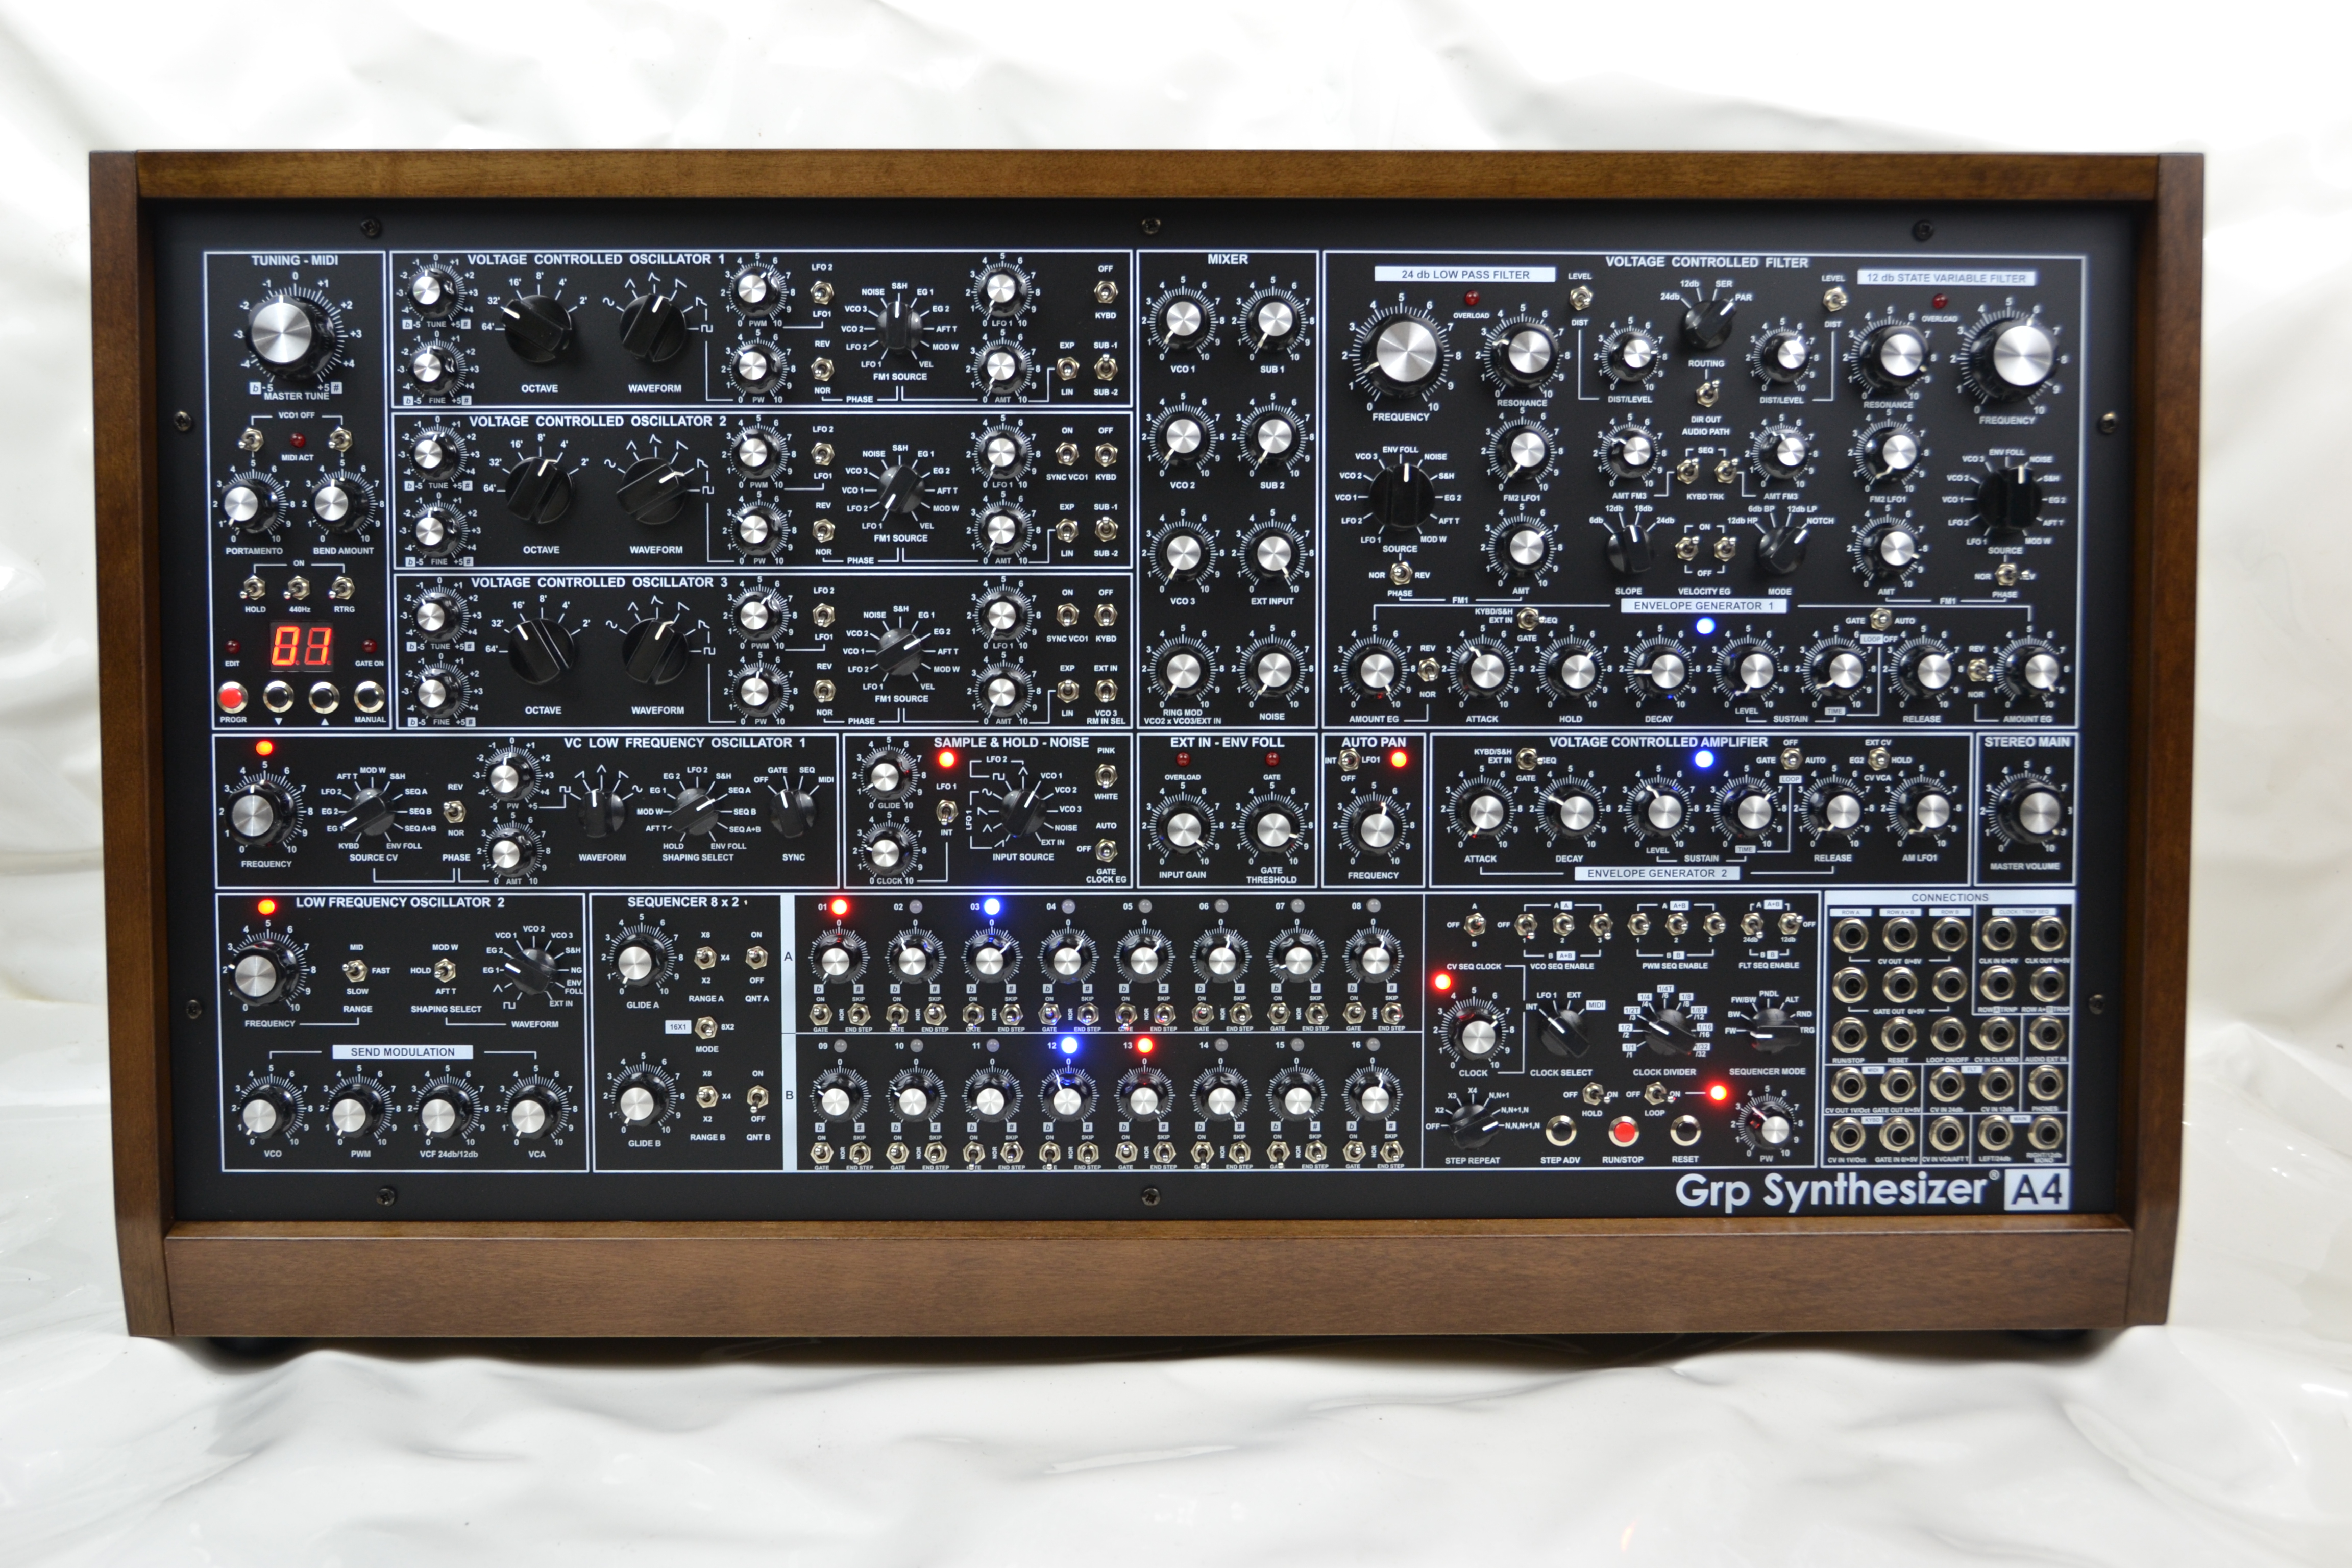 Grp A4 synth